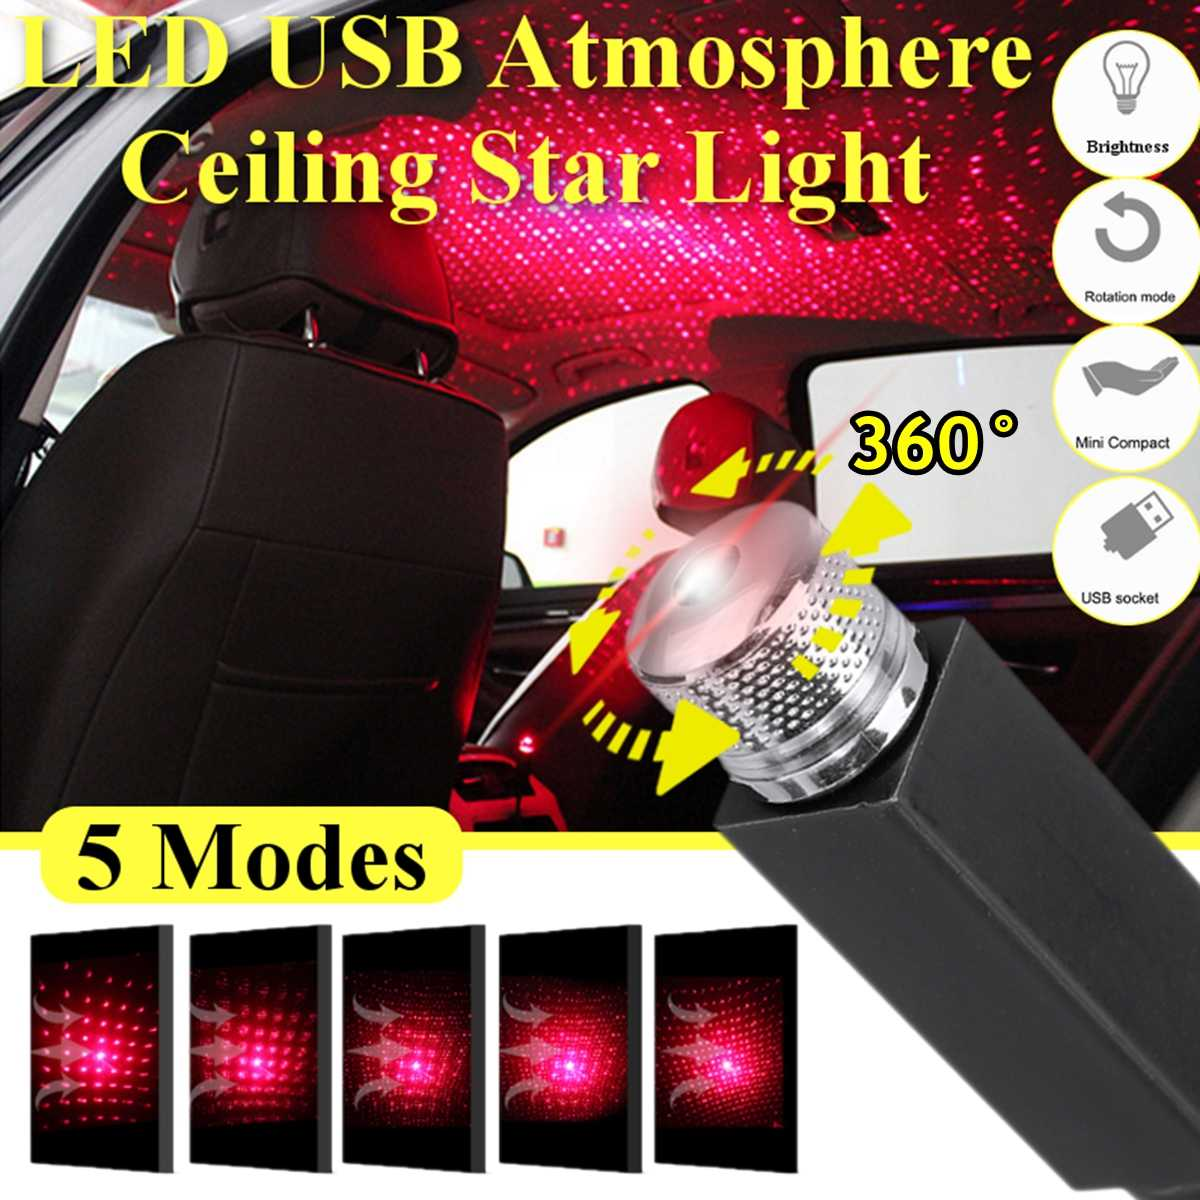 LED 5 Modes Usb Car Interior Atmosphere Ceiling Night Star Light Lamp Flexible Pipe Roof Decoration Red Purple Color Accessories